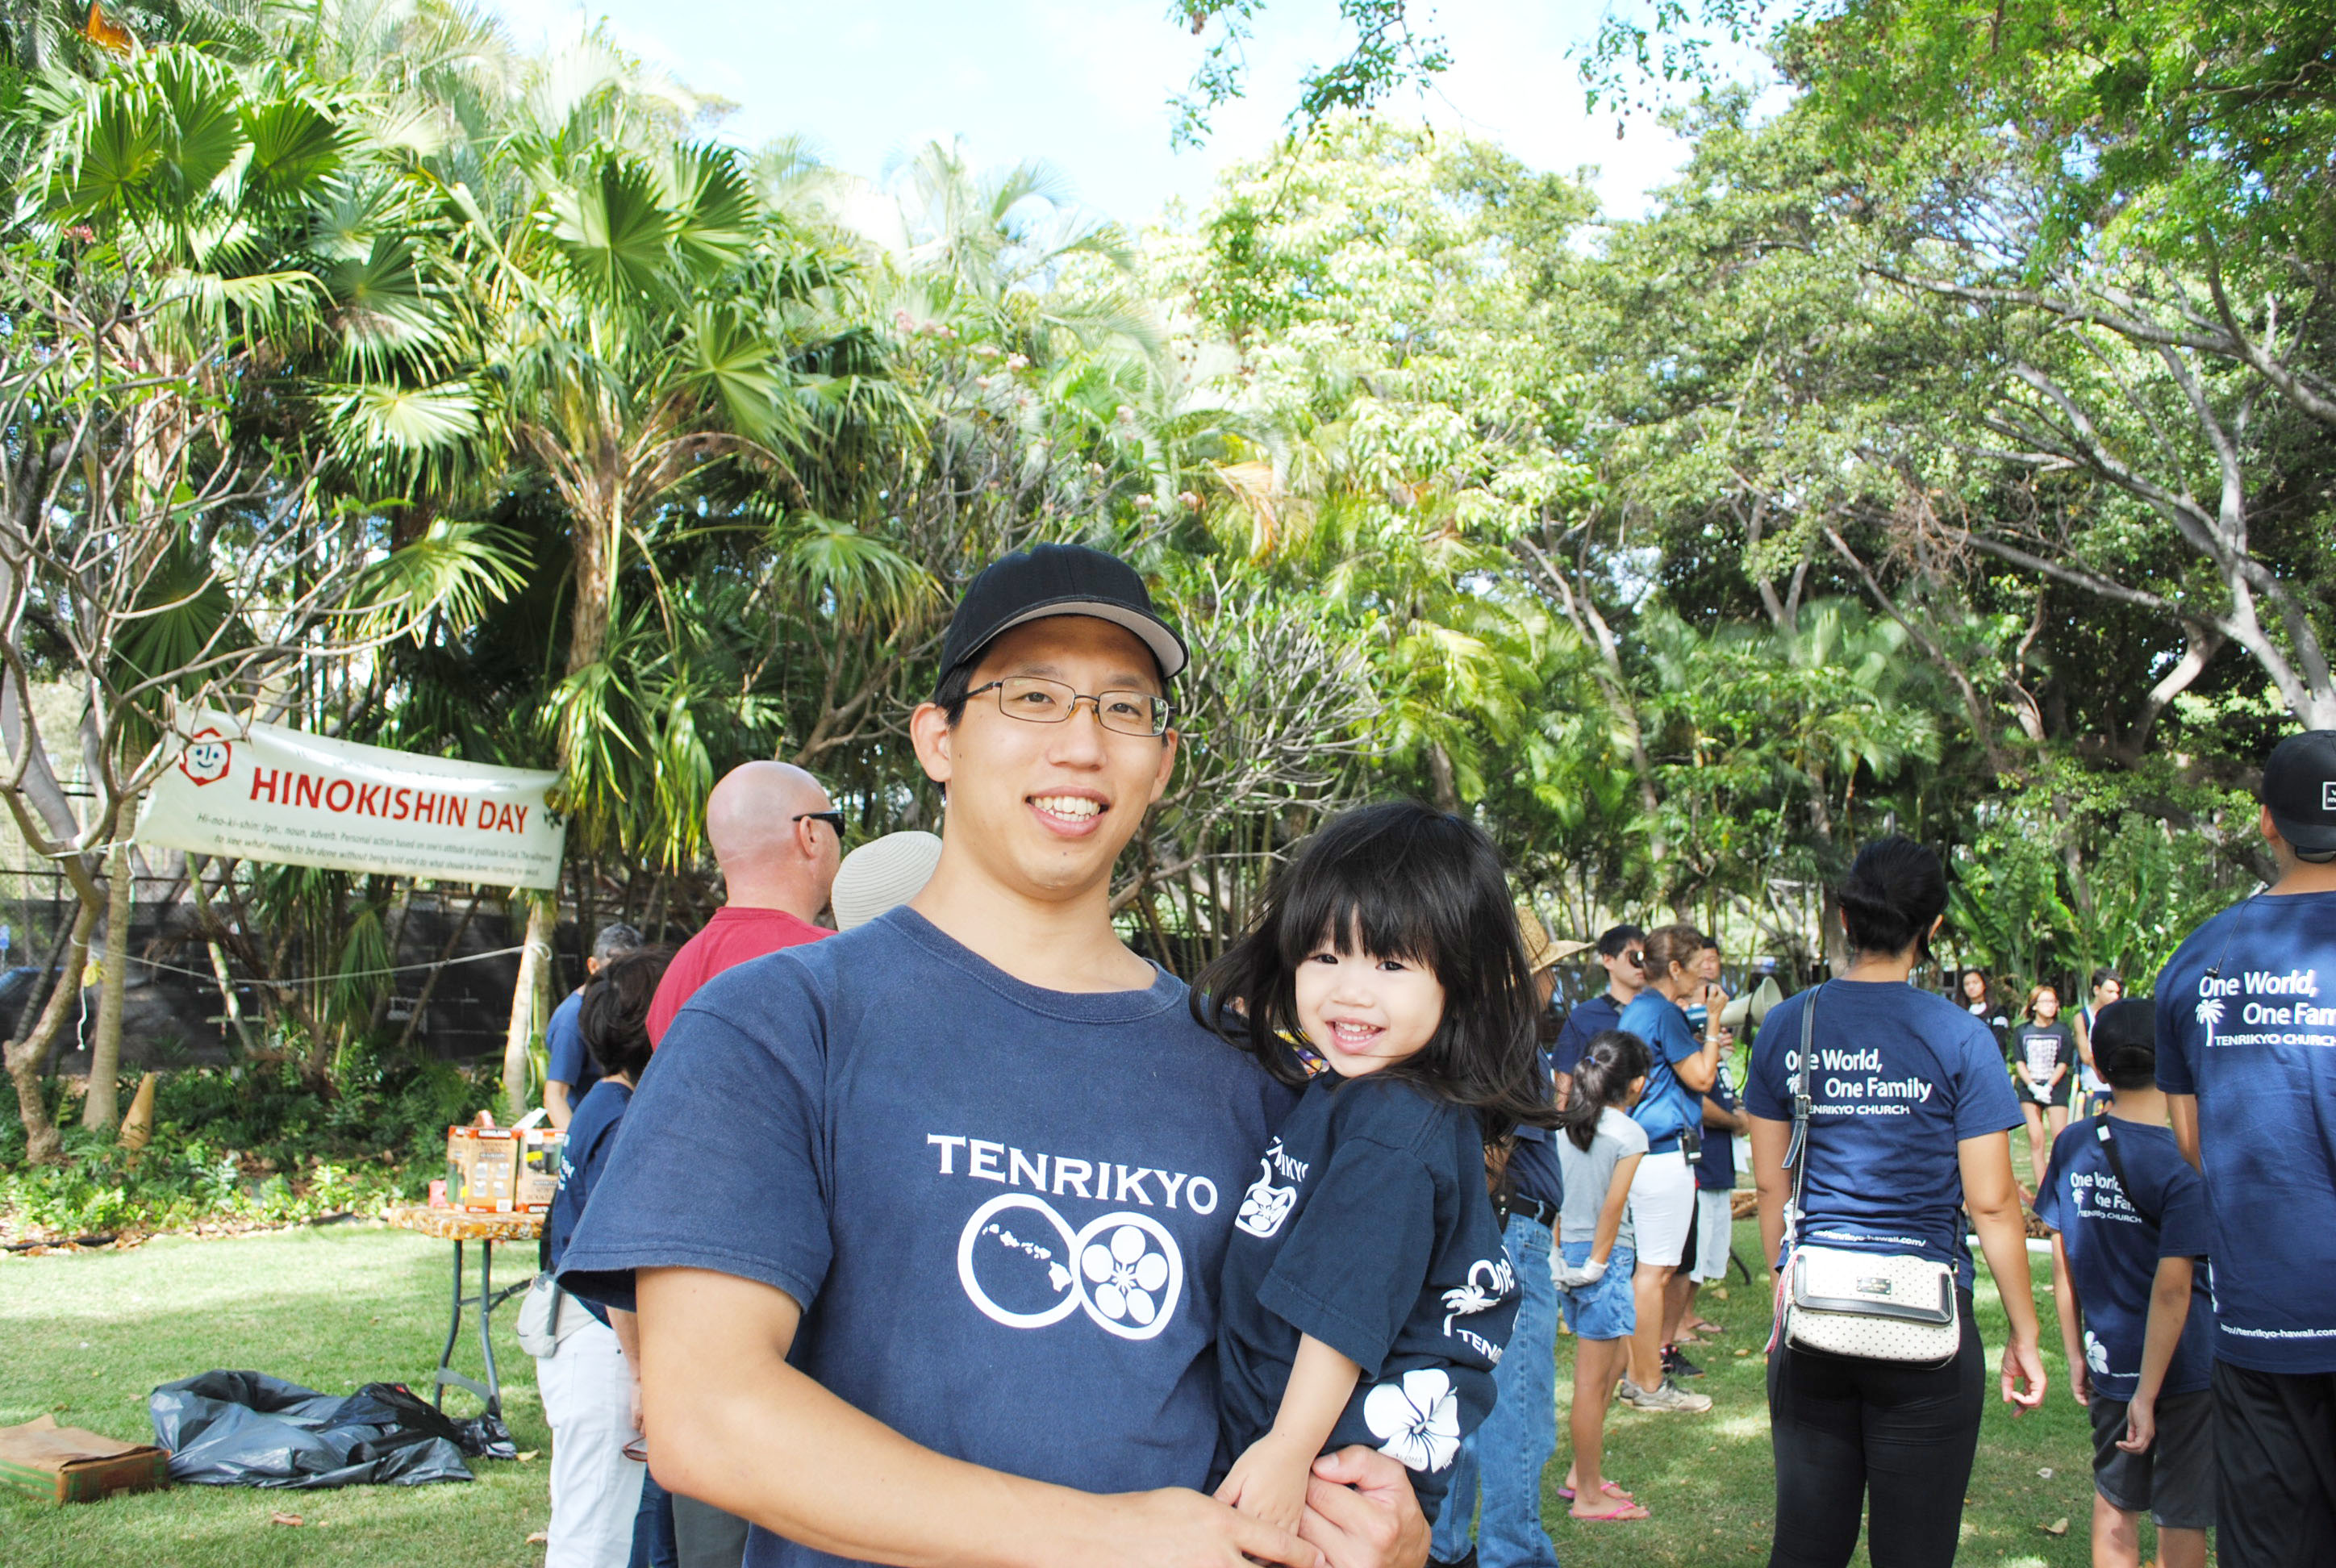 AllTenrikyo Hinokishin Day Honolulu Zoo 2016 Tenrikyo Pearl Church